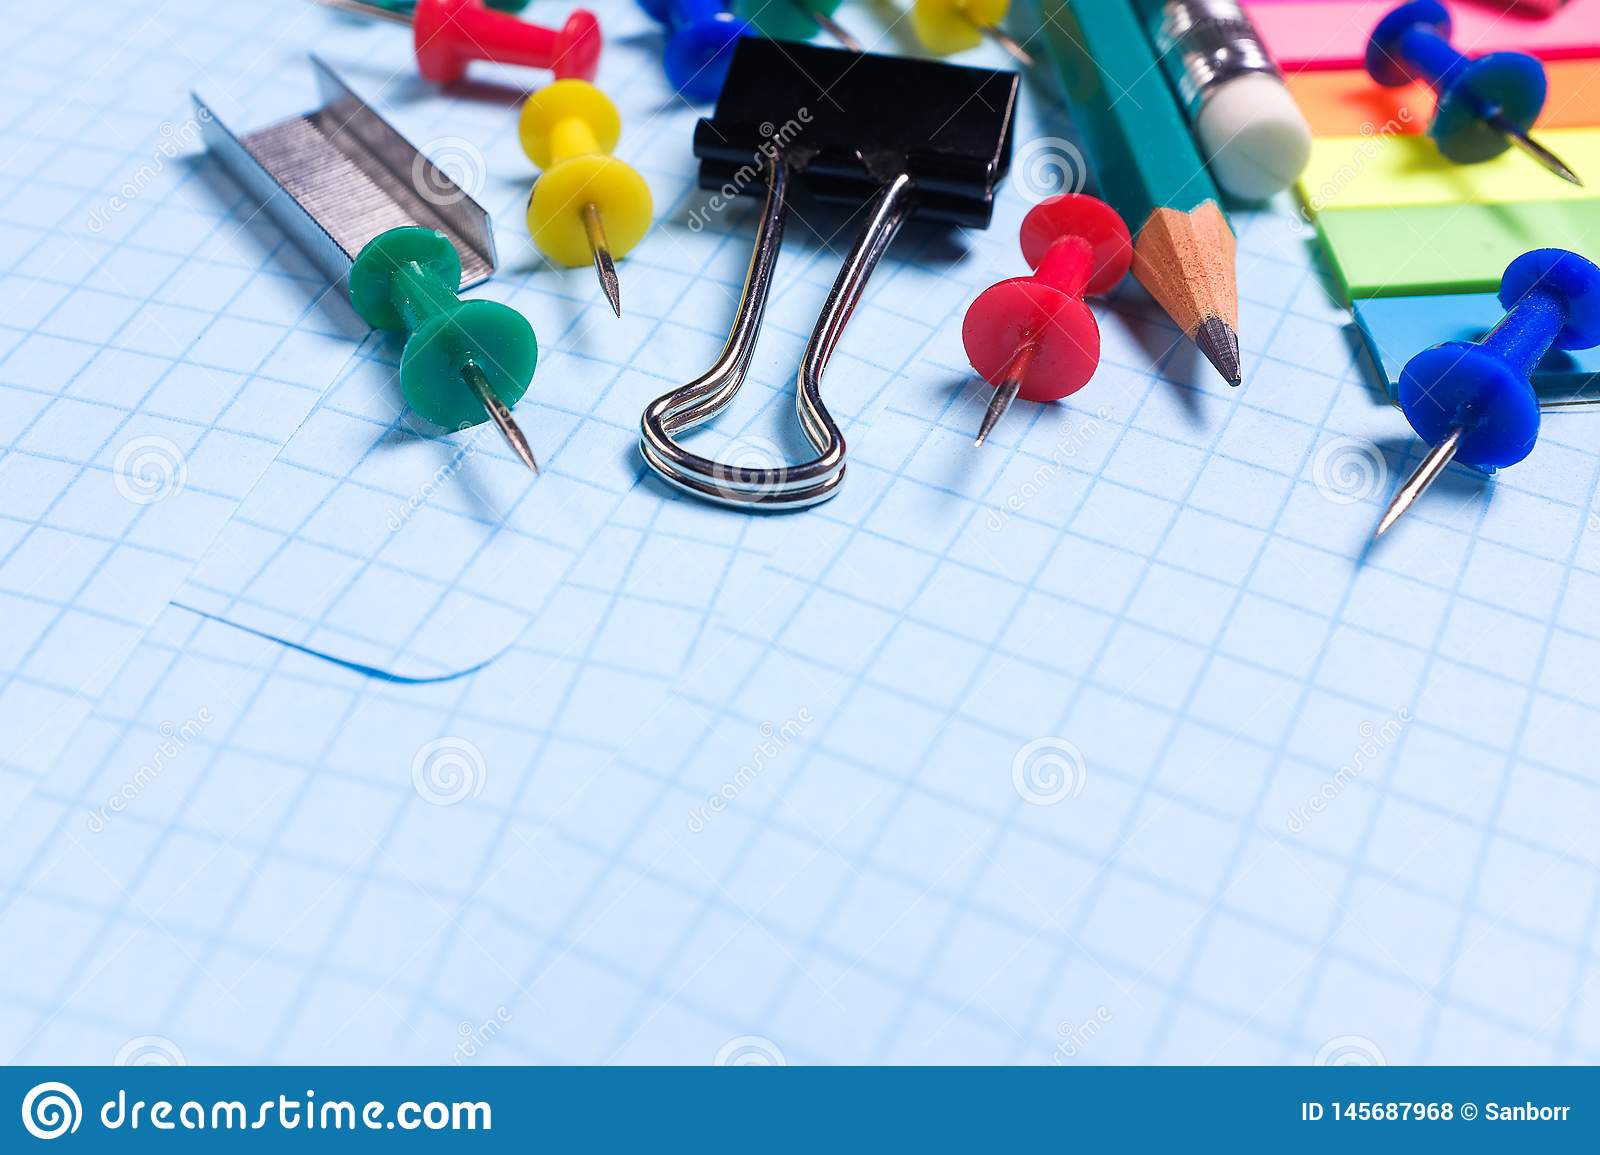 School and office stationery on a white sheet. The concept of education, office work, business, entrepreneurship. Workplace